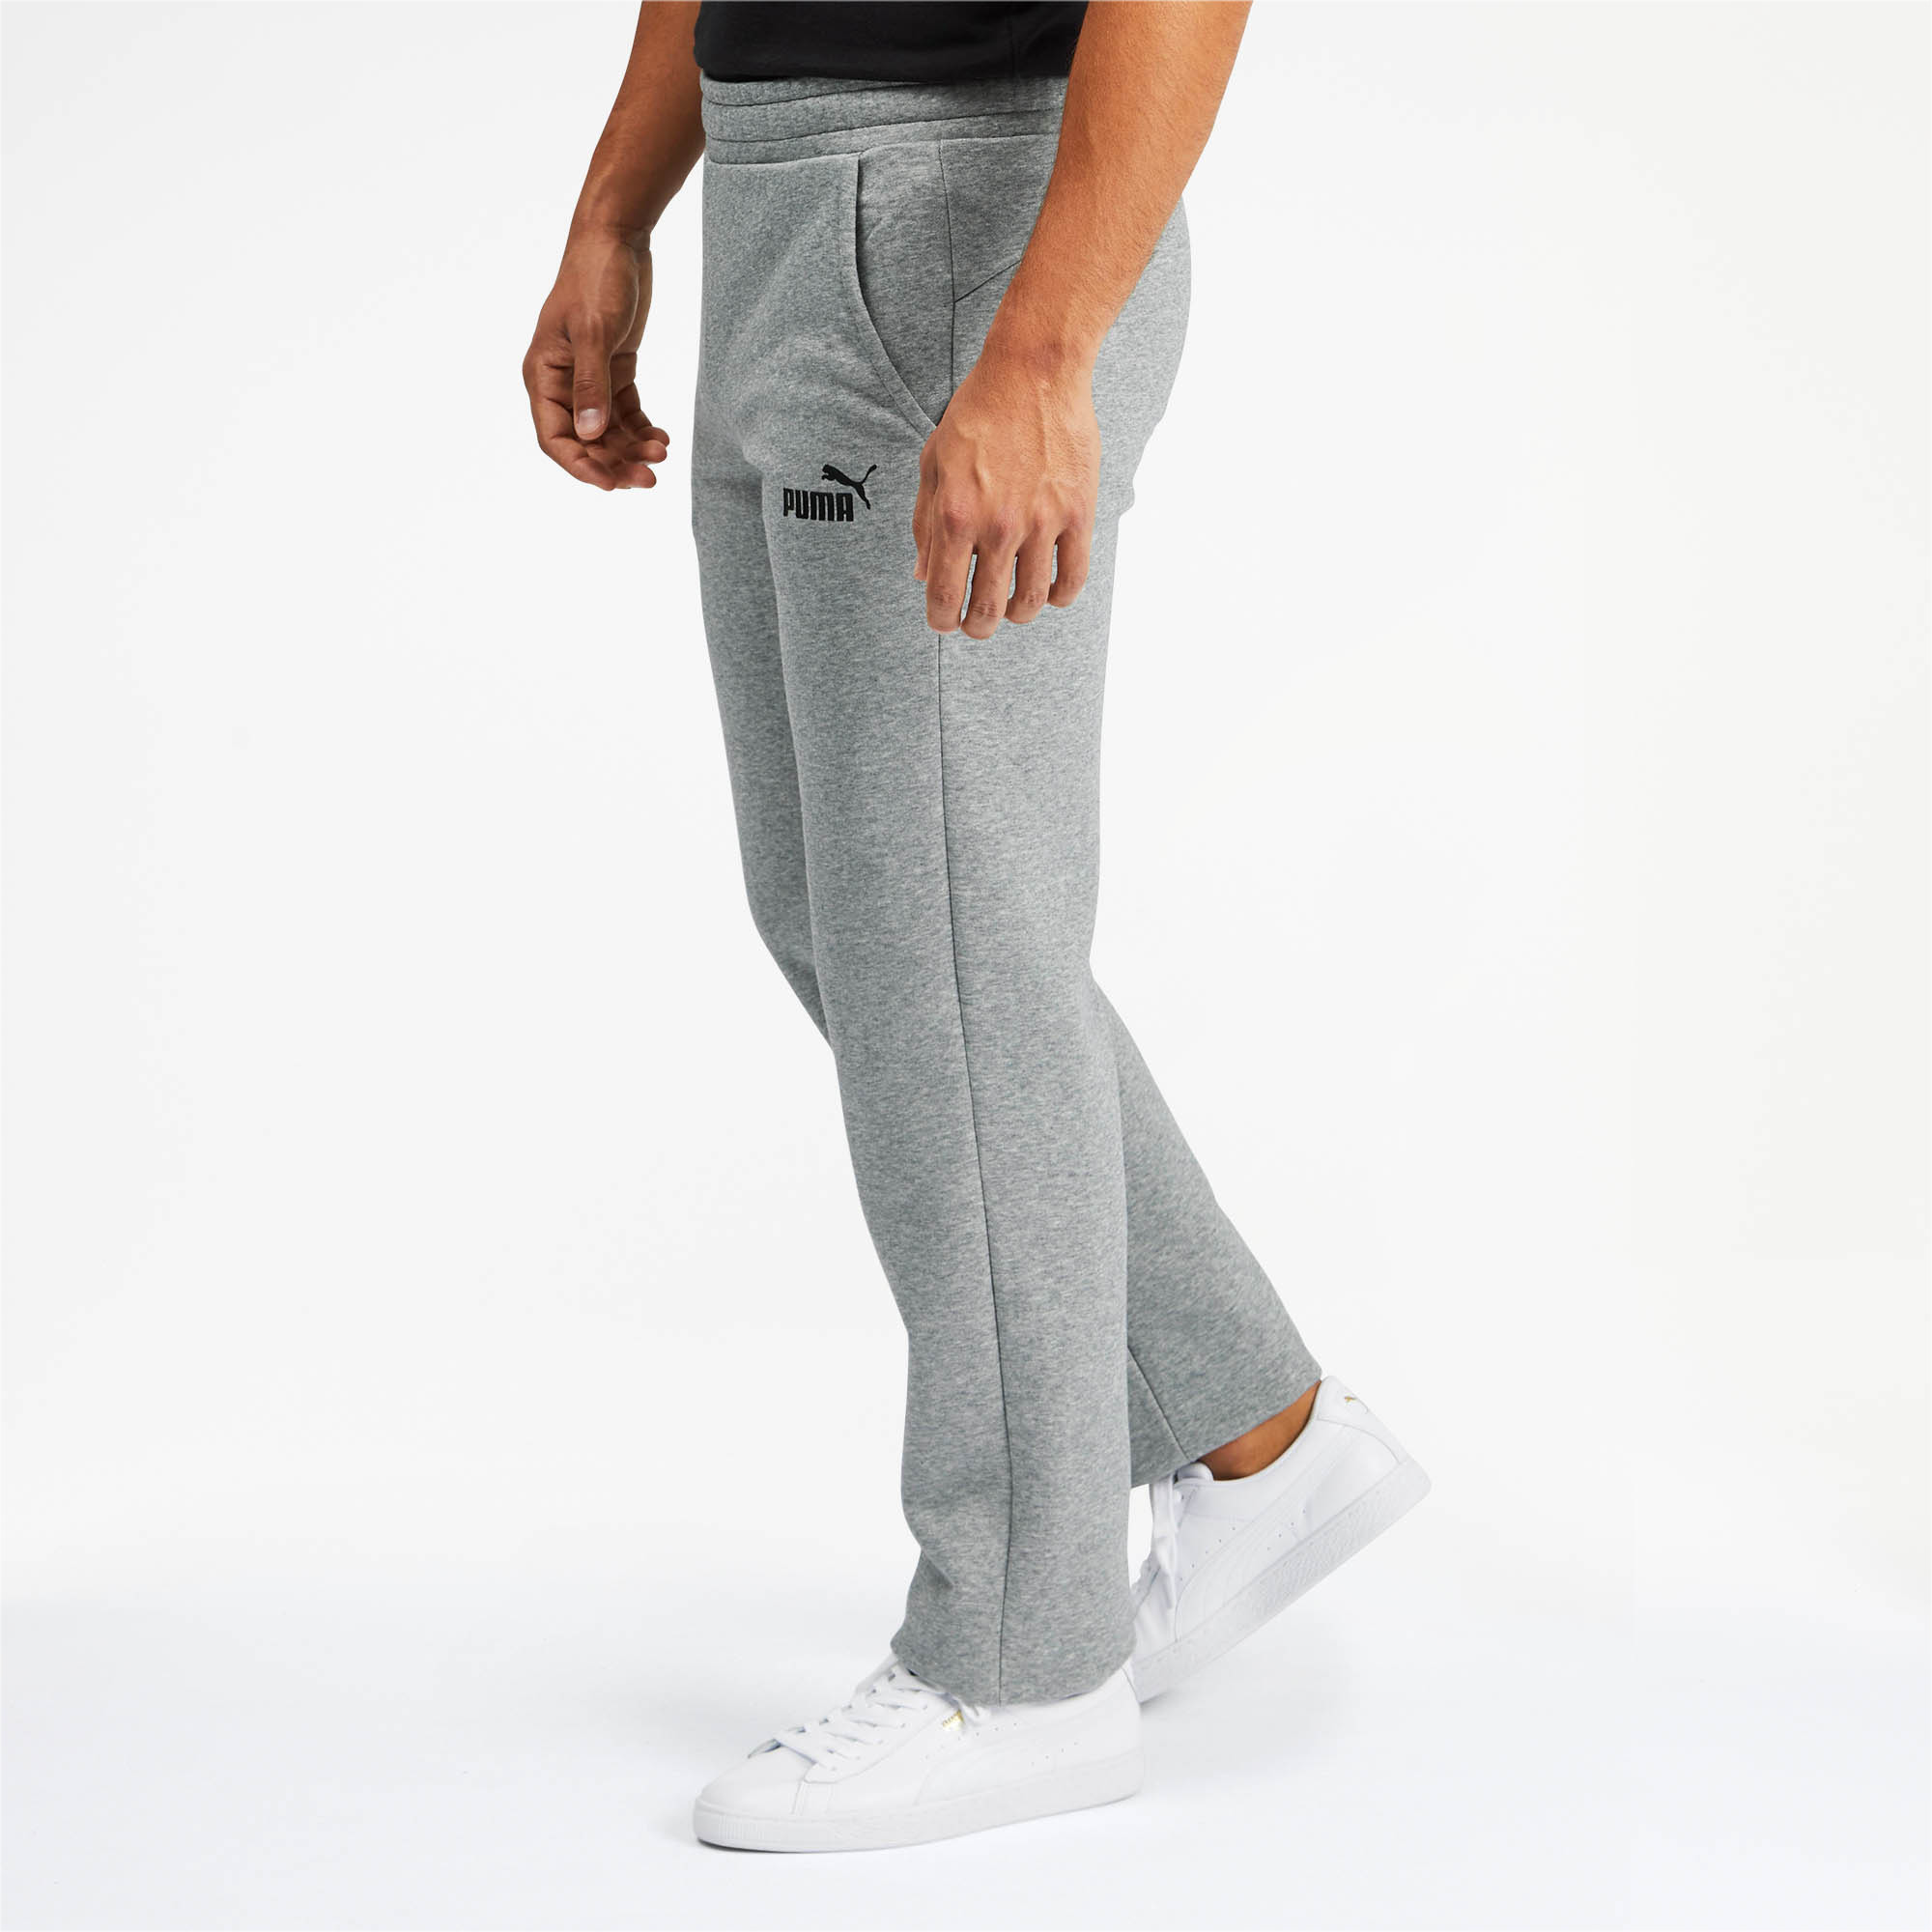 PUMA-Essentials-Men-039-s-Fleece-Pants-Men-Knitted-Pants-Basics thumbnail 9